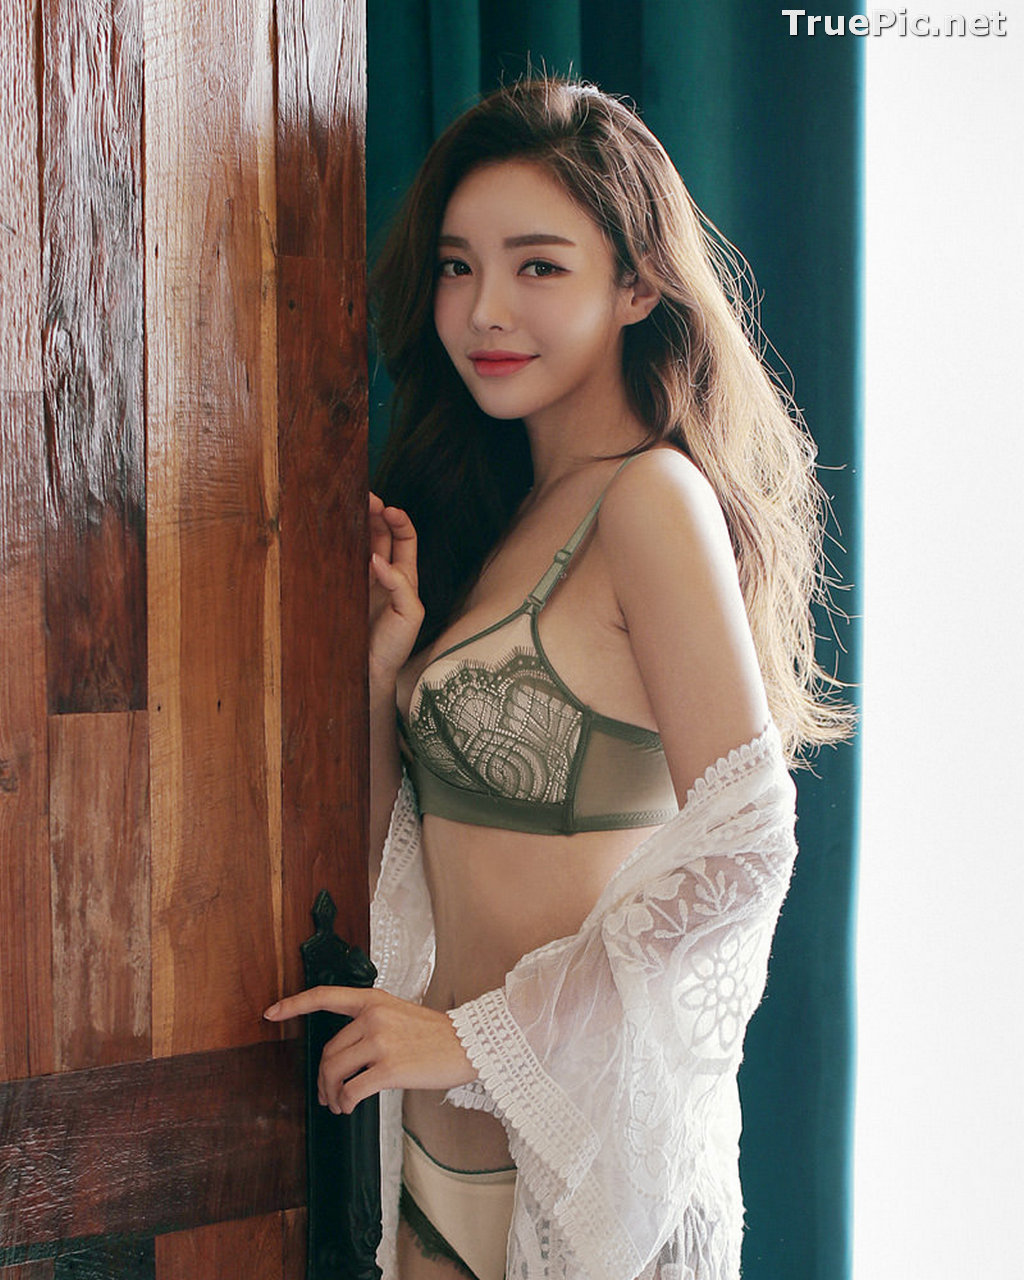 Image Korean Fashion Model – Jin Hee – Sexy Lingerie Collection #2 - TruePic.net - Picture-1